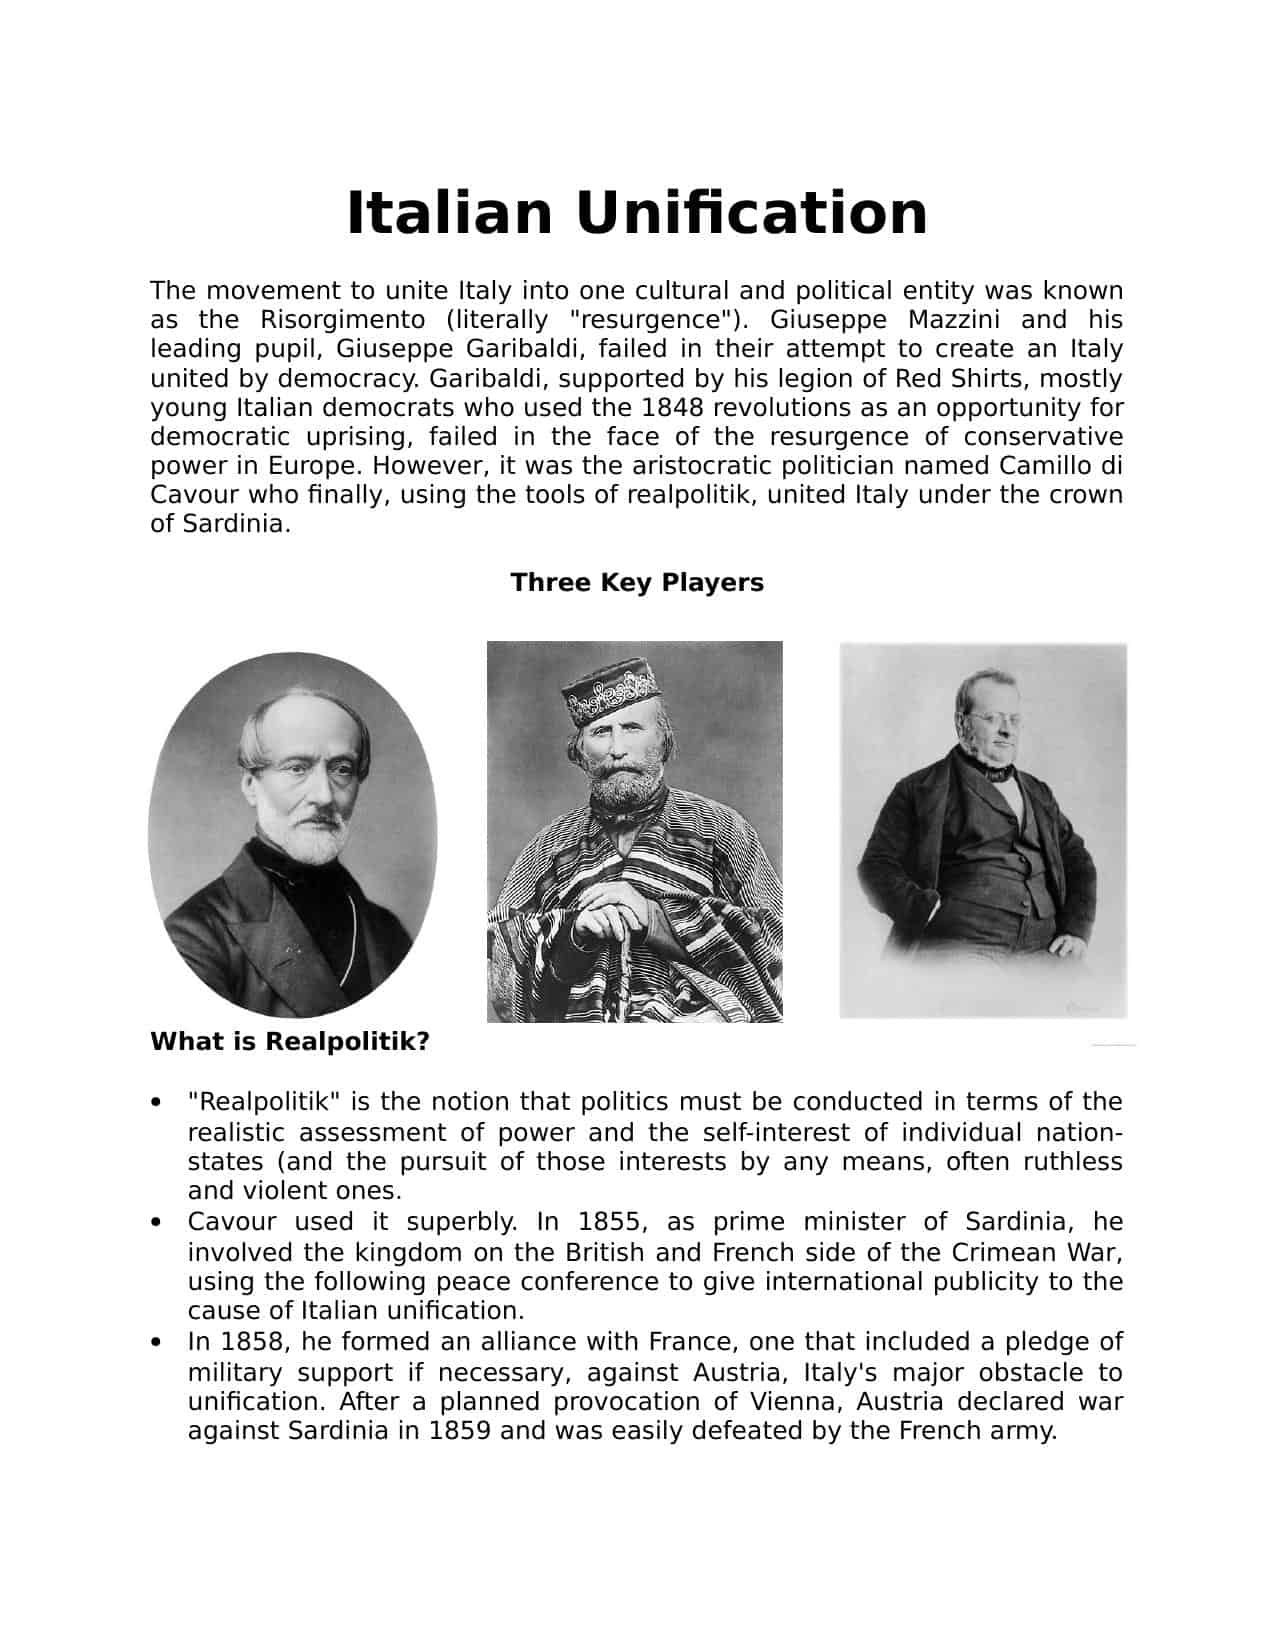 Italian Unification Worksheet